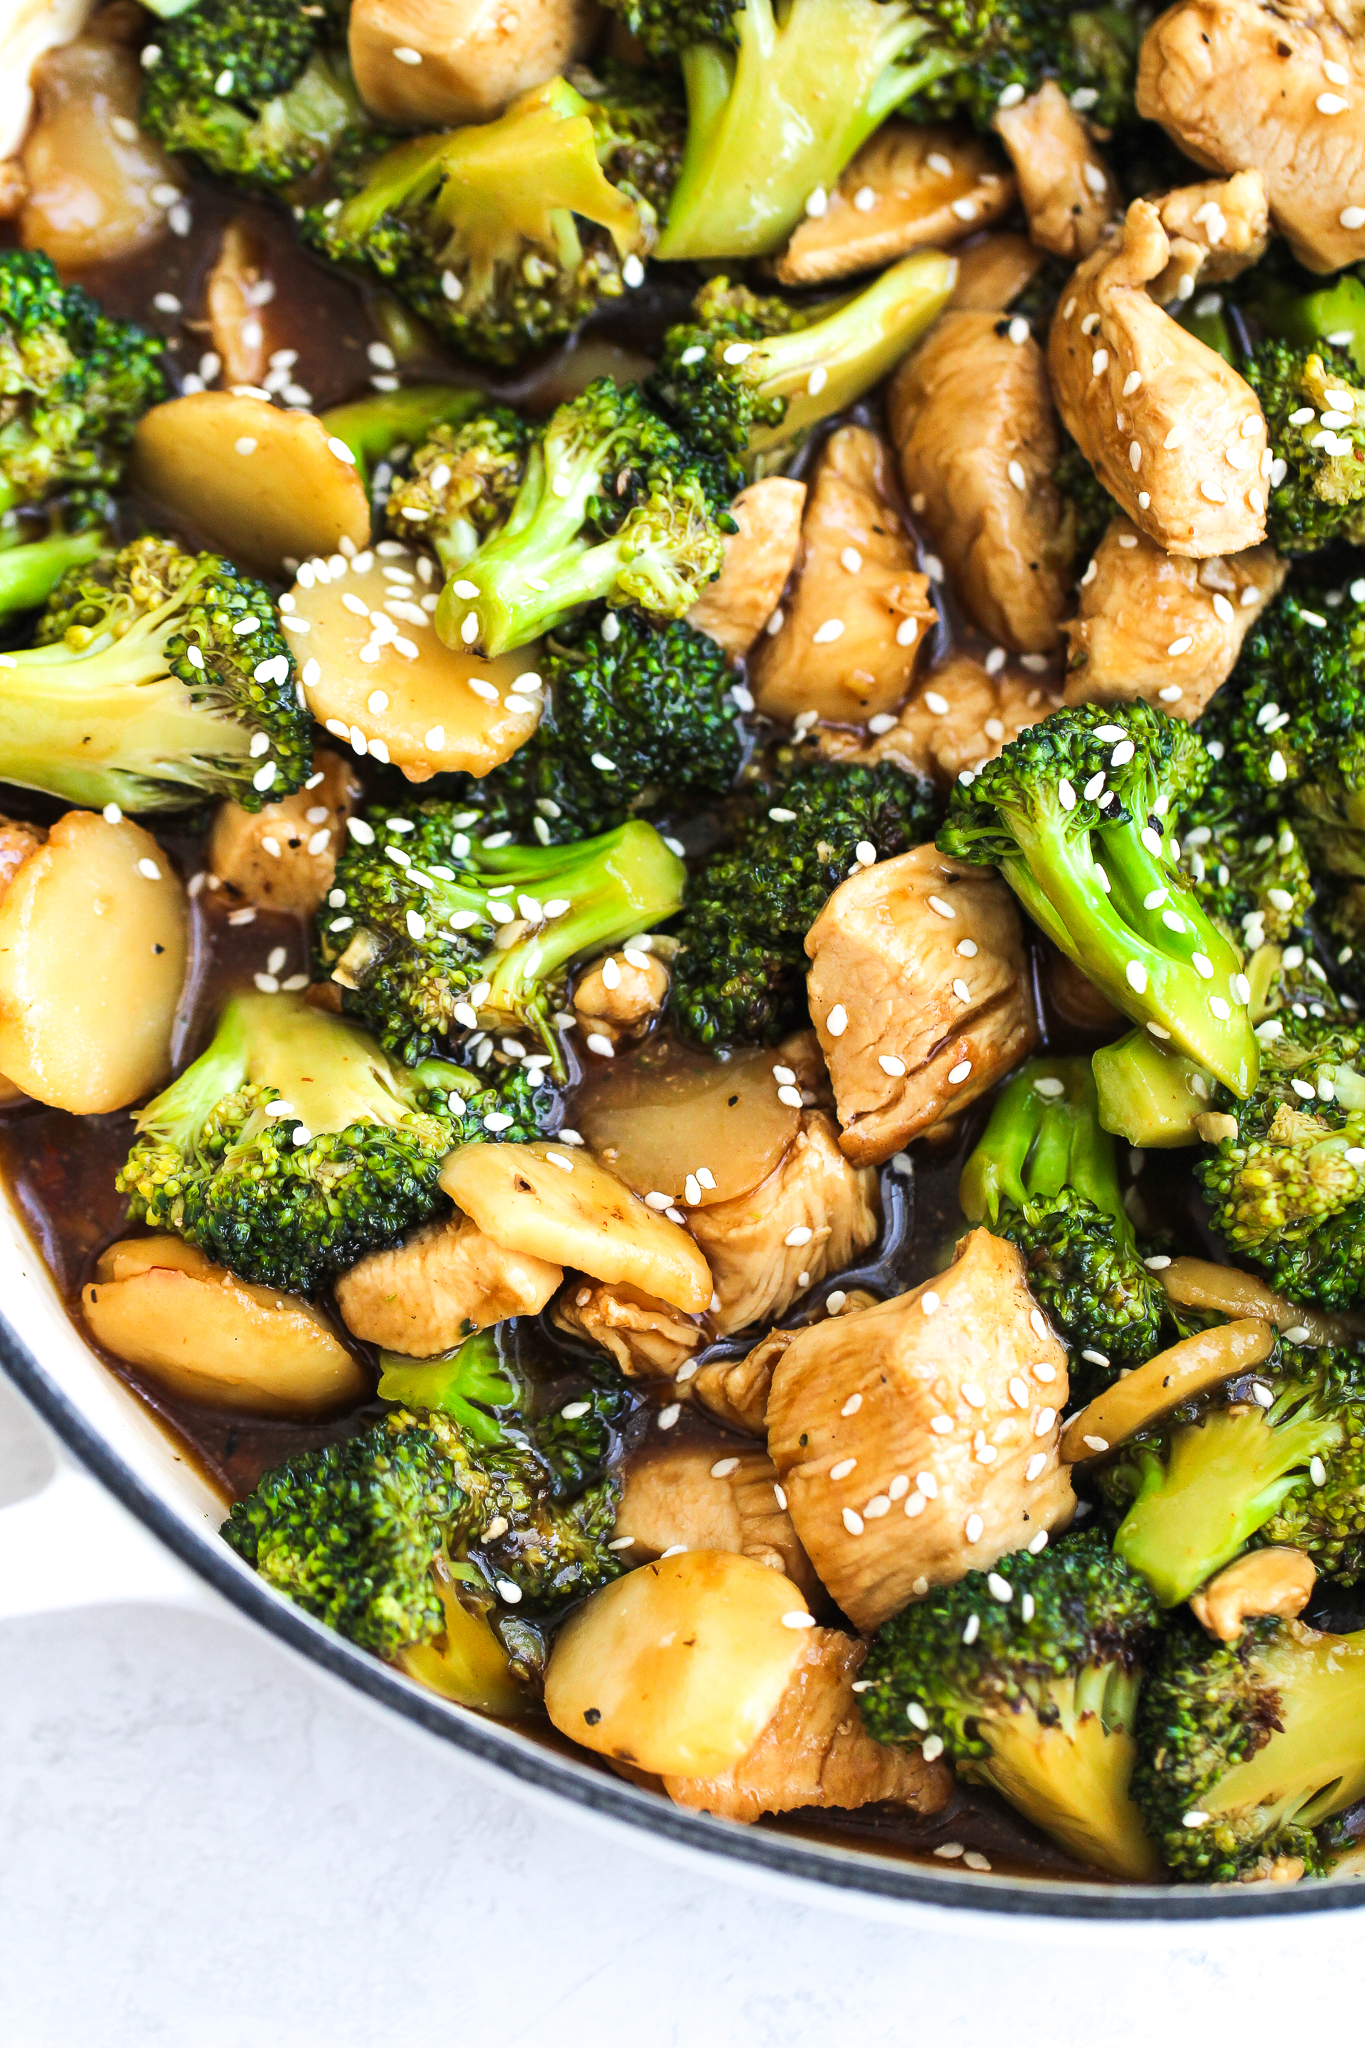 chicken broccoli stir-fry in a large white skillet topped with white sesame seeds